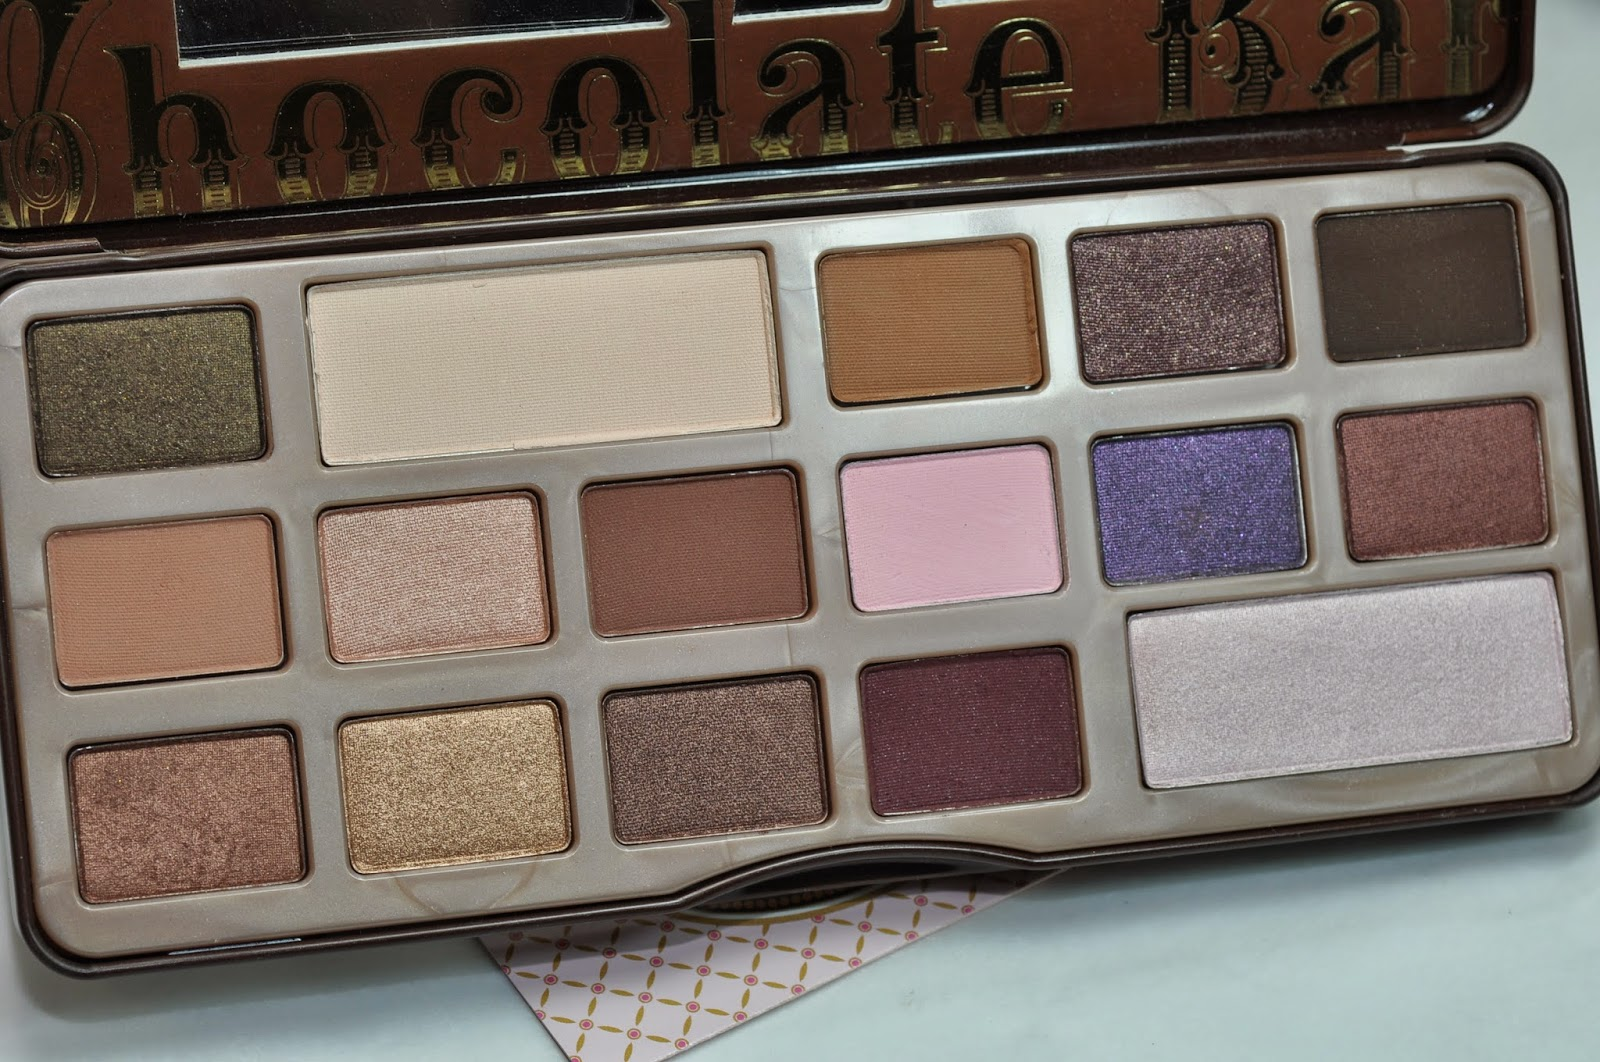 Too Faced Chocolate Bar Palette: Gilded Ganache, White Chocolate, Milk Chocolate, Black Forest Truffle, Triple Fudge Salted Caramel, Marzipan, Semi-Sweet, Strawberry BonBon, Candied Violet, Amaretto Hazelnut, Creme Brulee, Haute Chocolate, Cherry Cordial, Champagne Truffle